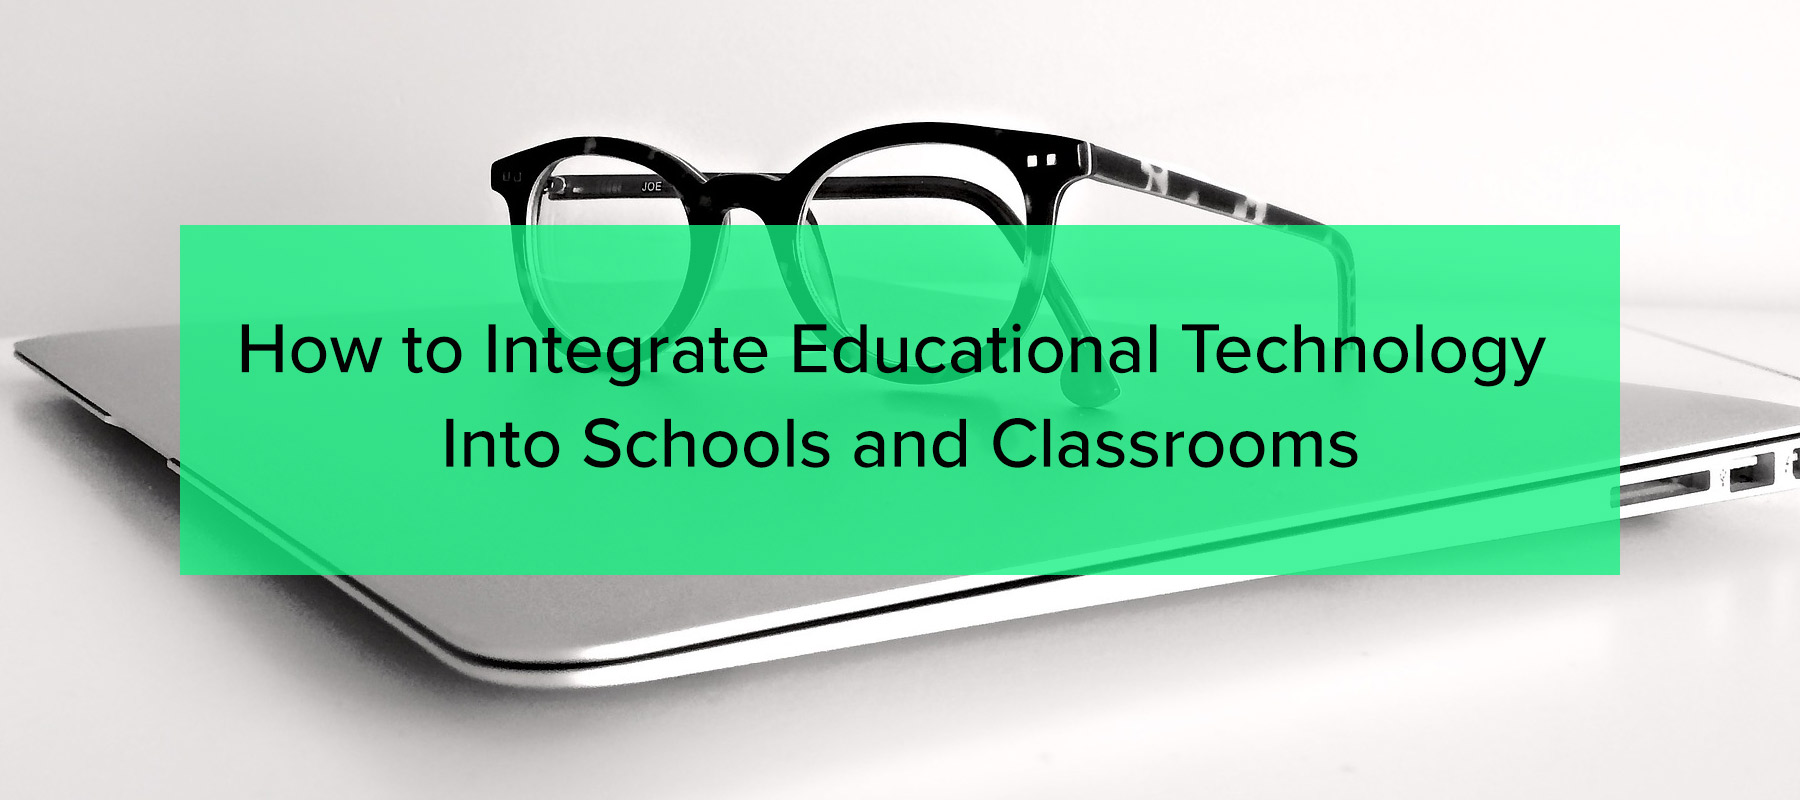 How-to-Integrate-Educational-Technology-Into-Schools-and-Classrooms